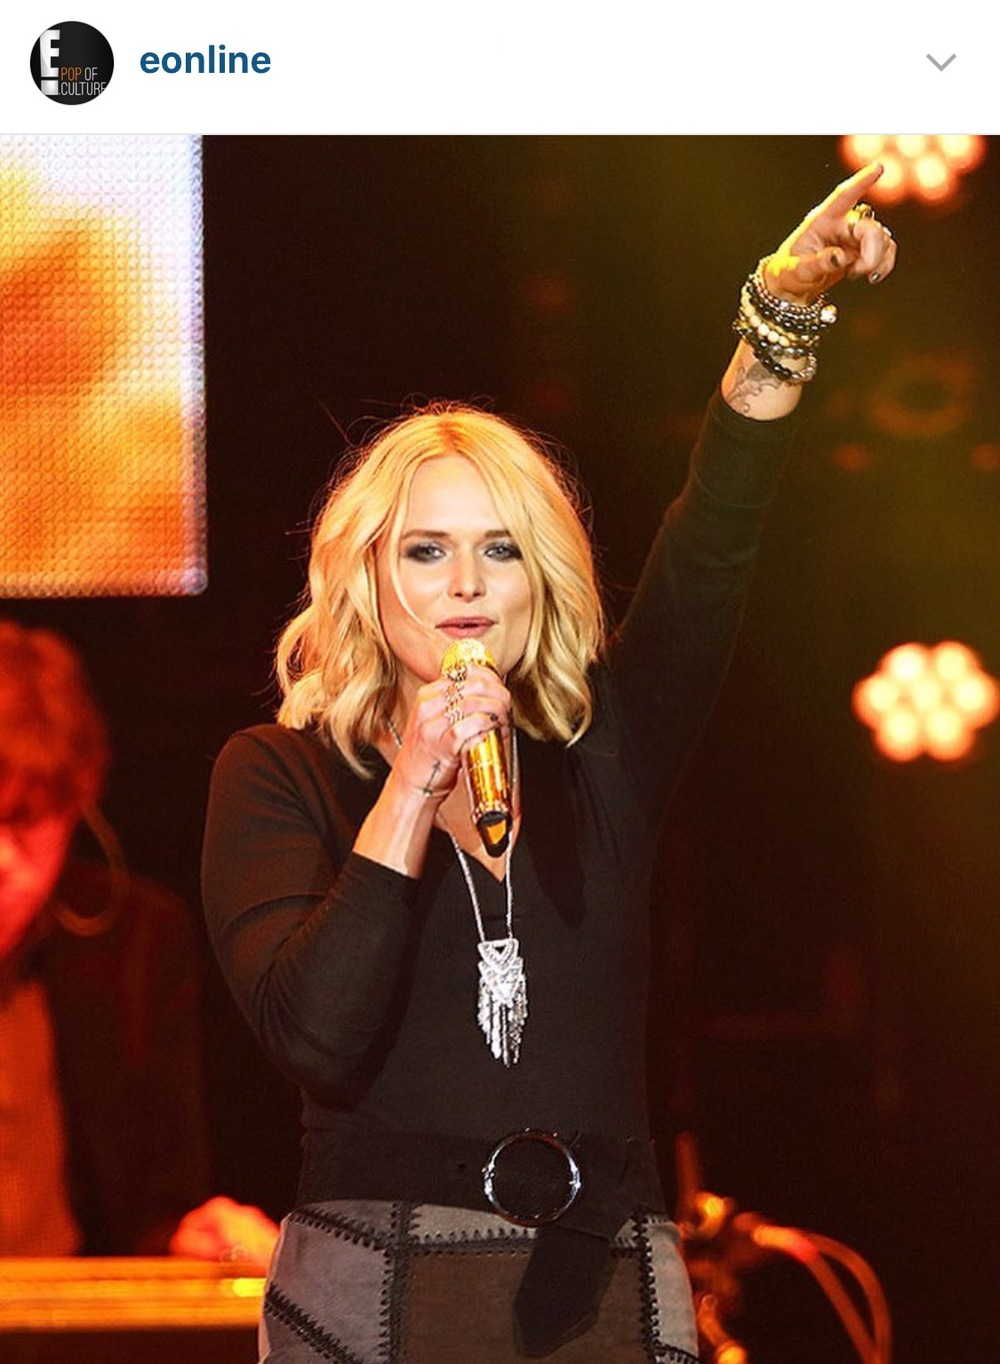 Miranda Lambert at the C2C Country Music Festival! Photo credit: eOnline's Instagram Account